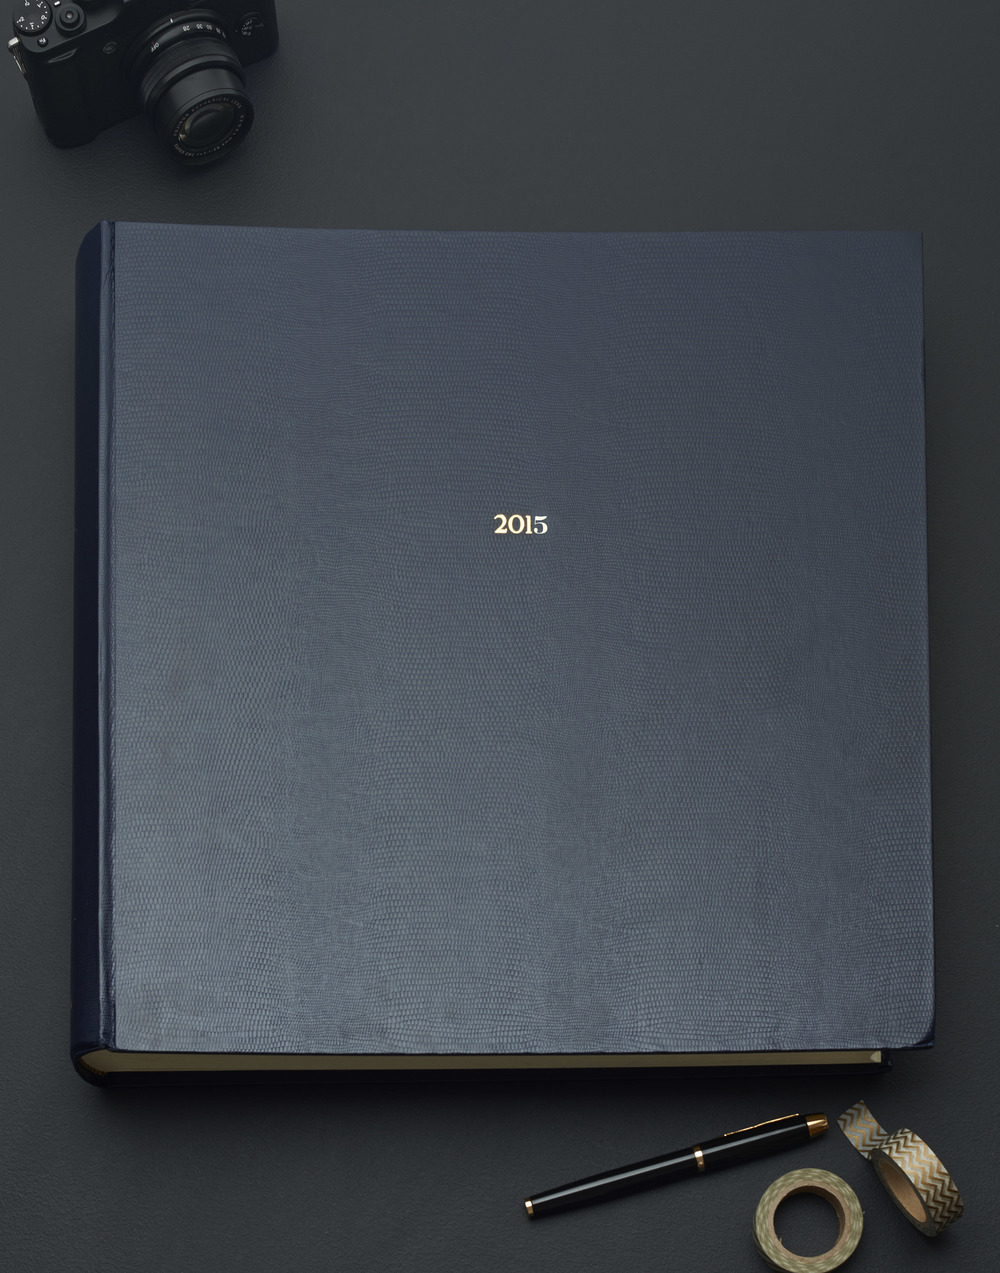 2015 LEATHER ALBUMS ARE FINALLY HERE!